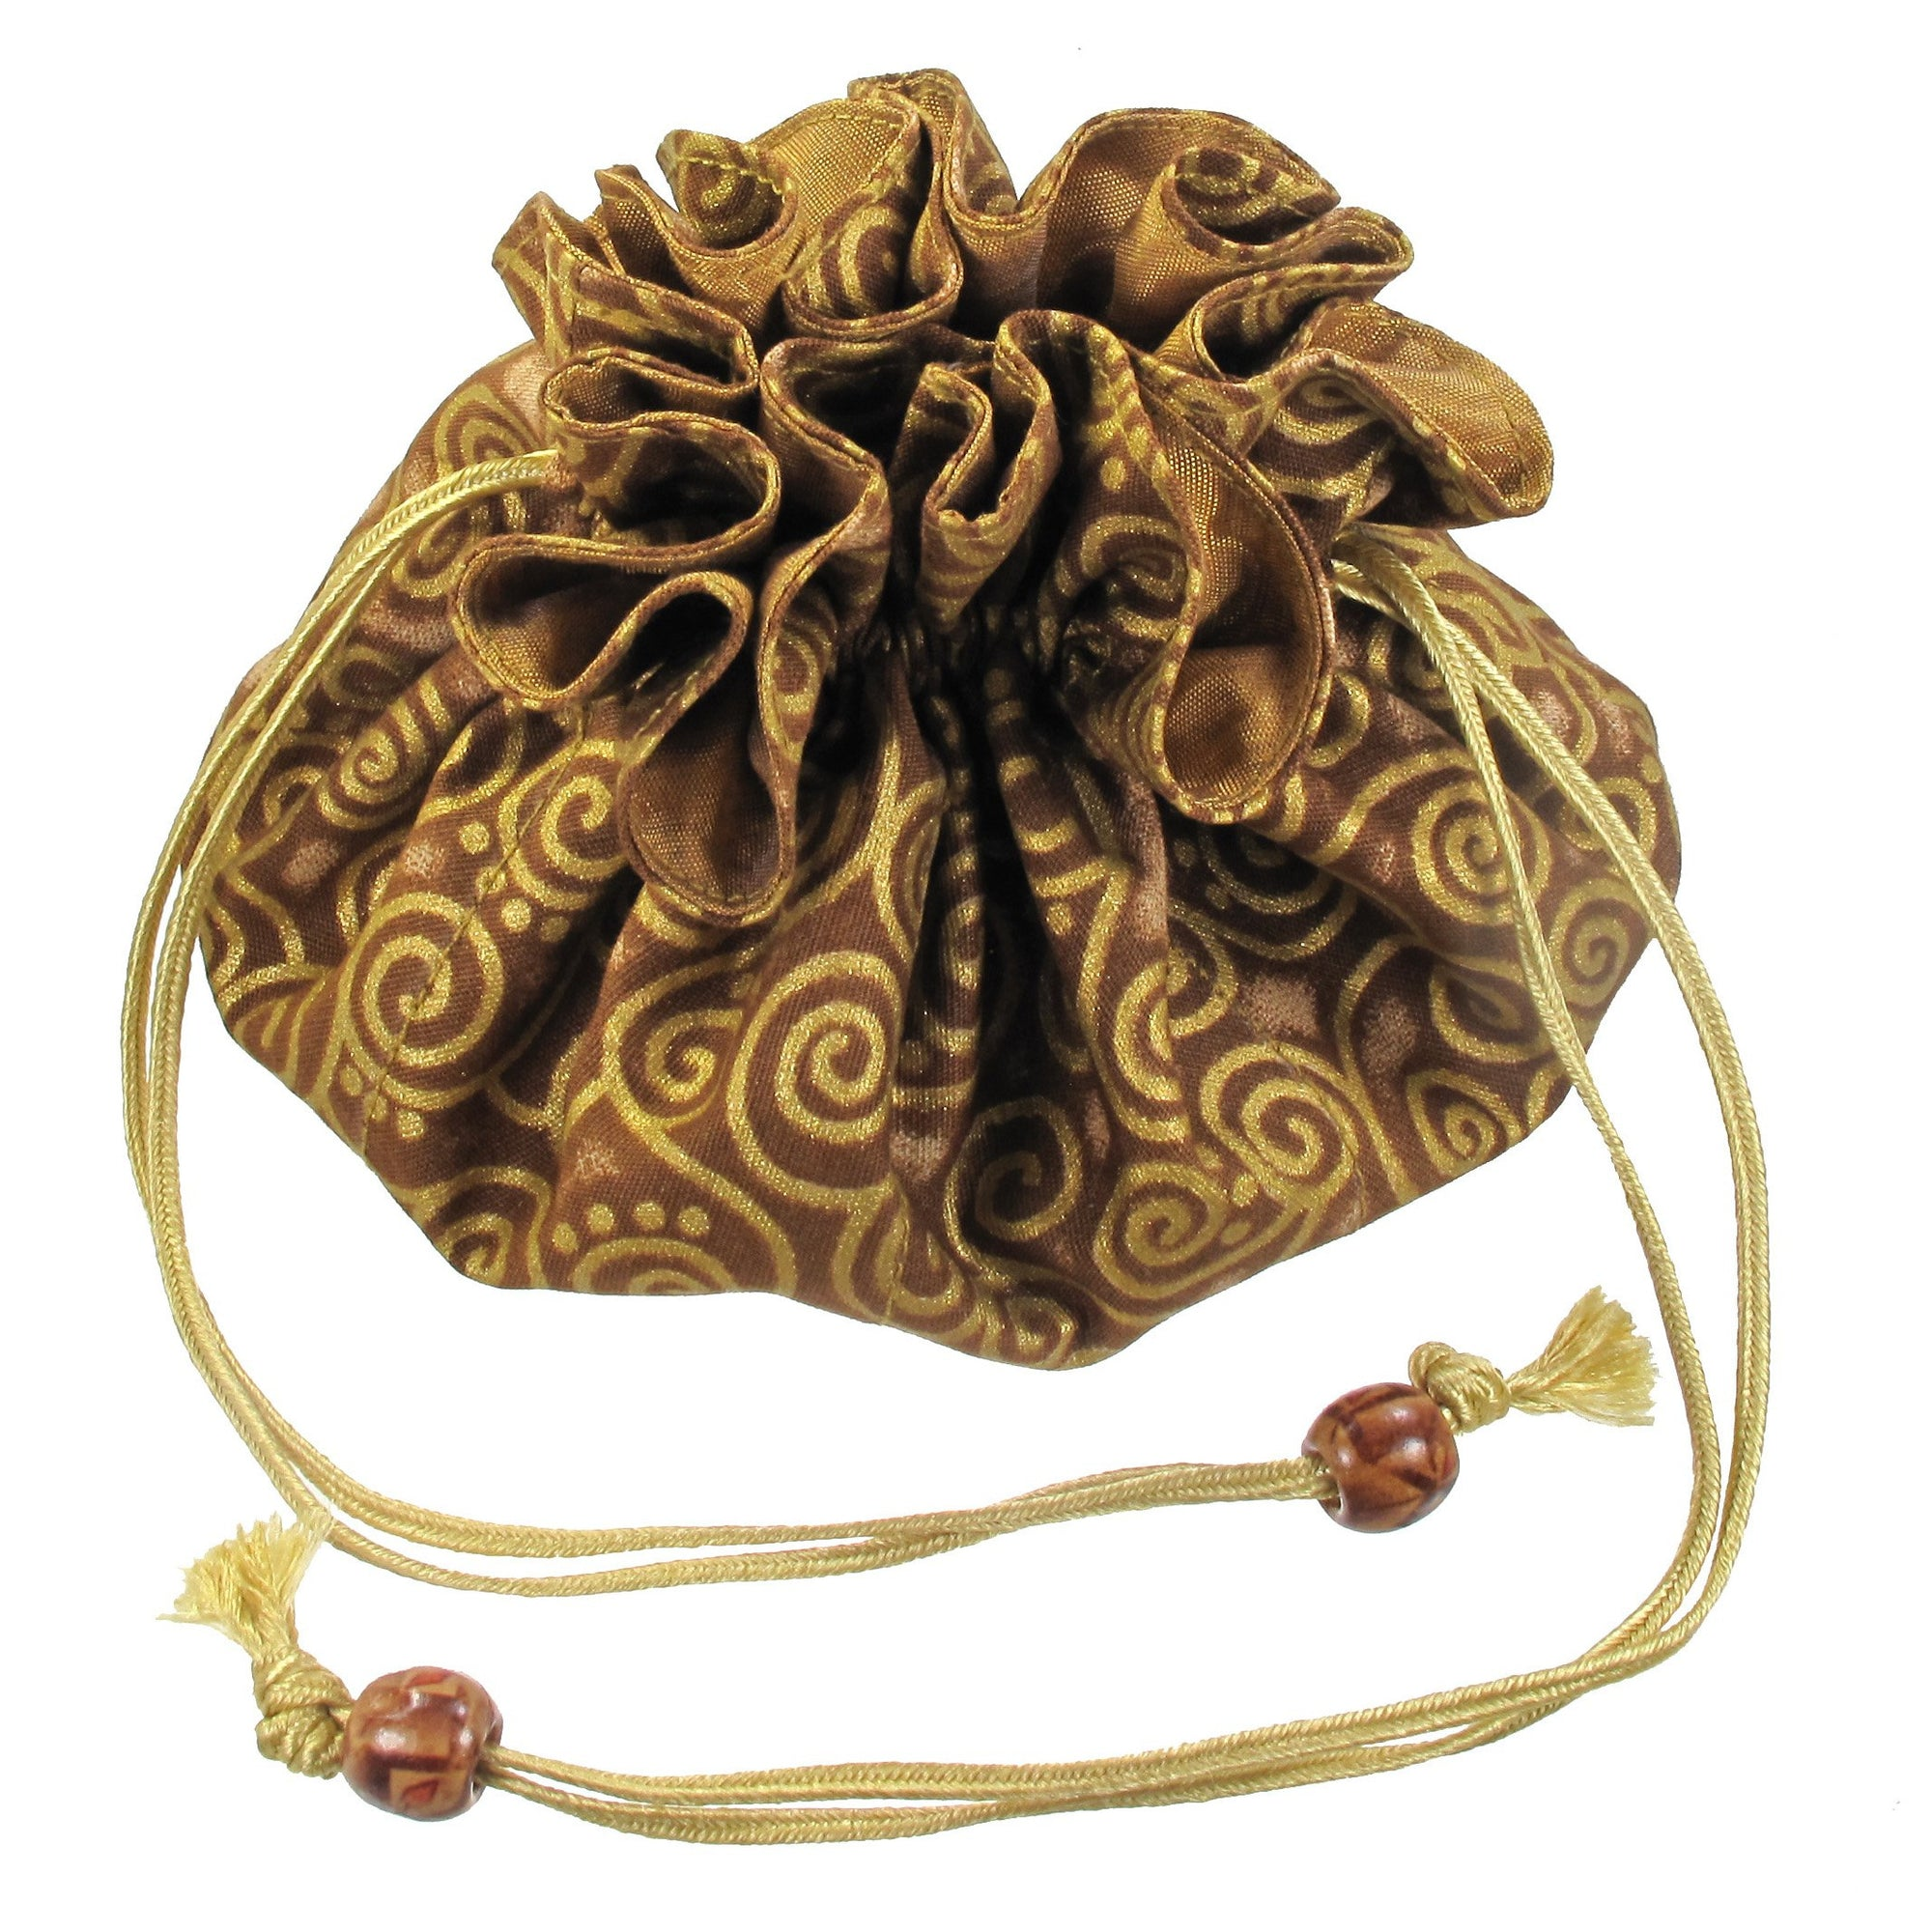 Handmade Drawstring Jewelry Pouch, 8 Pockets, Cotton, Gold with Gold Swirls